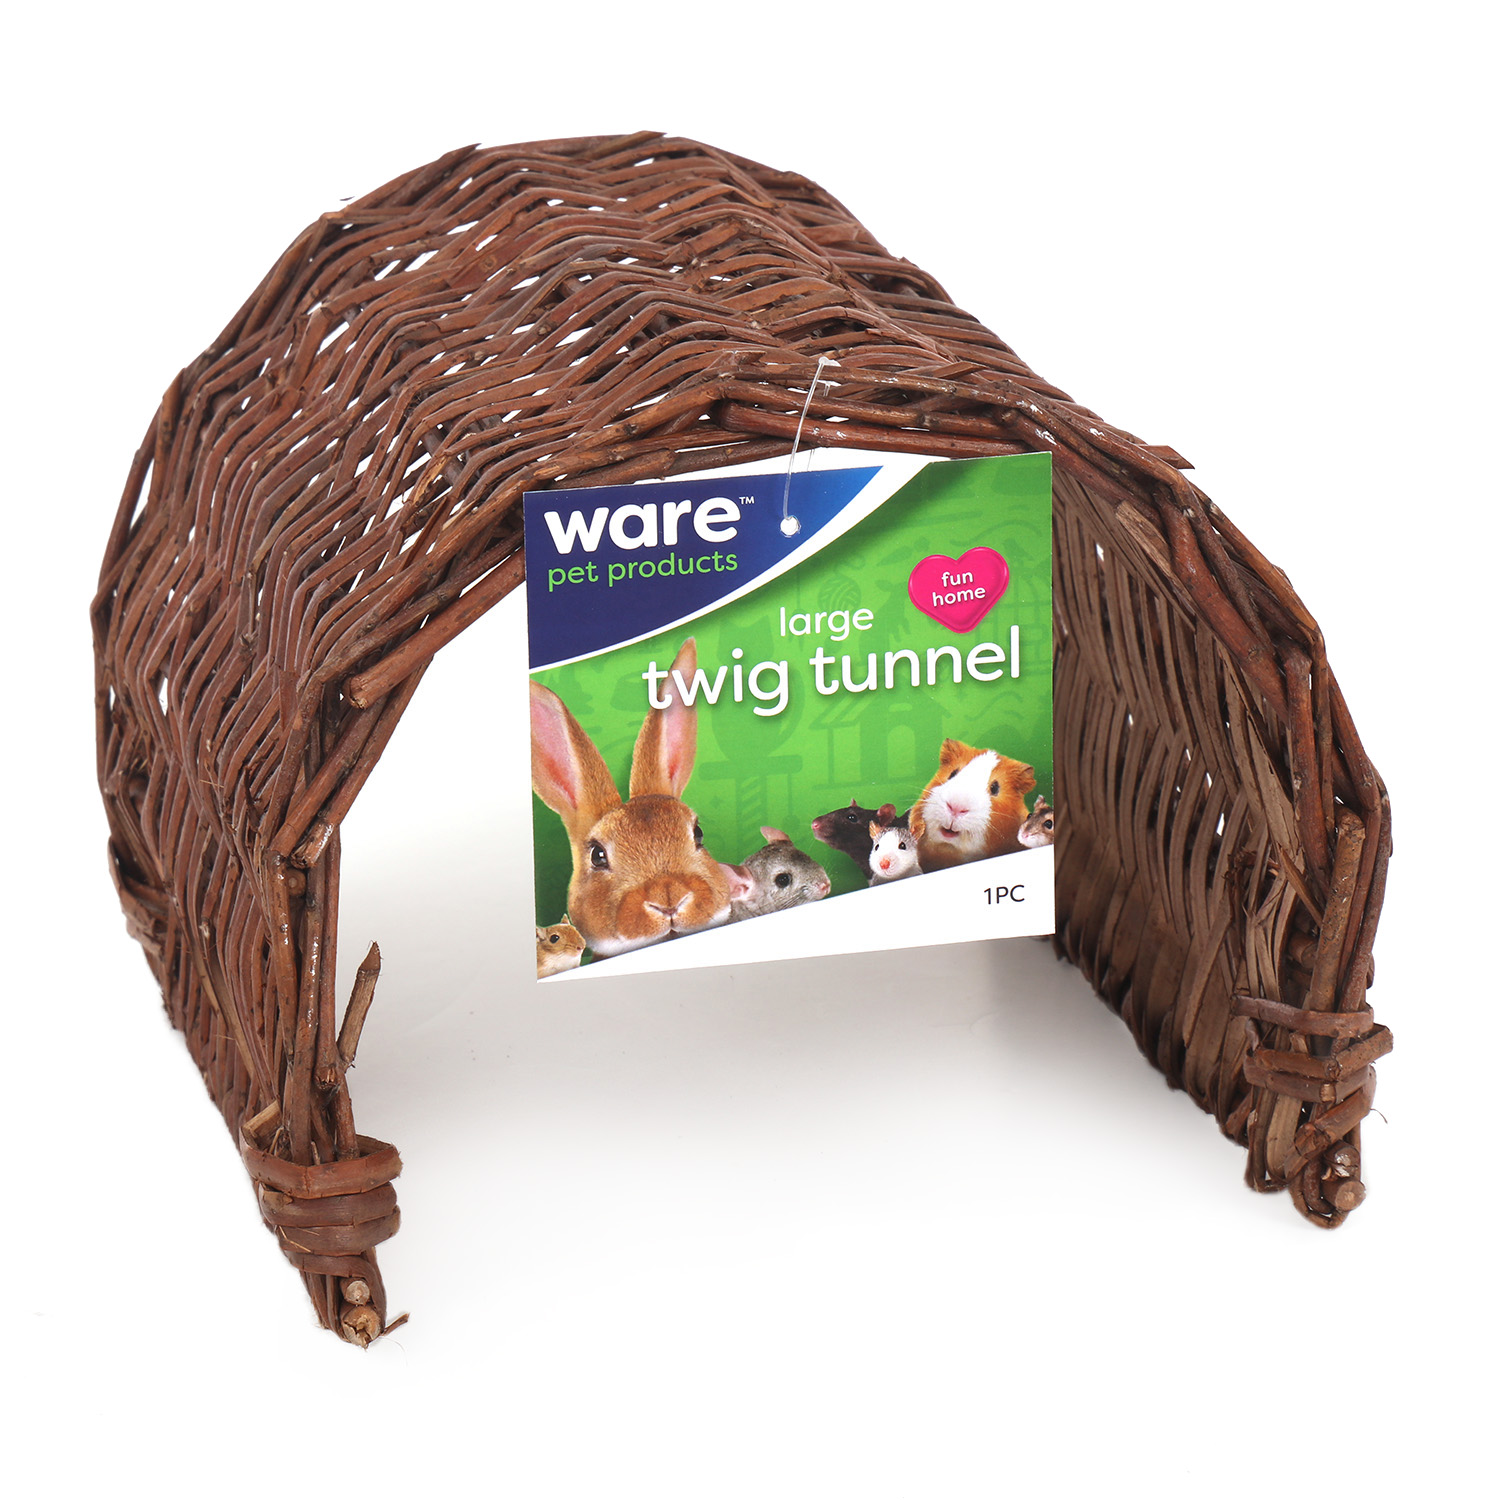 Twig Tunnel, Large